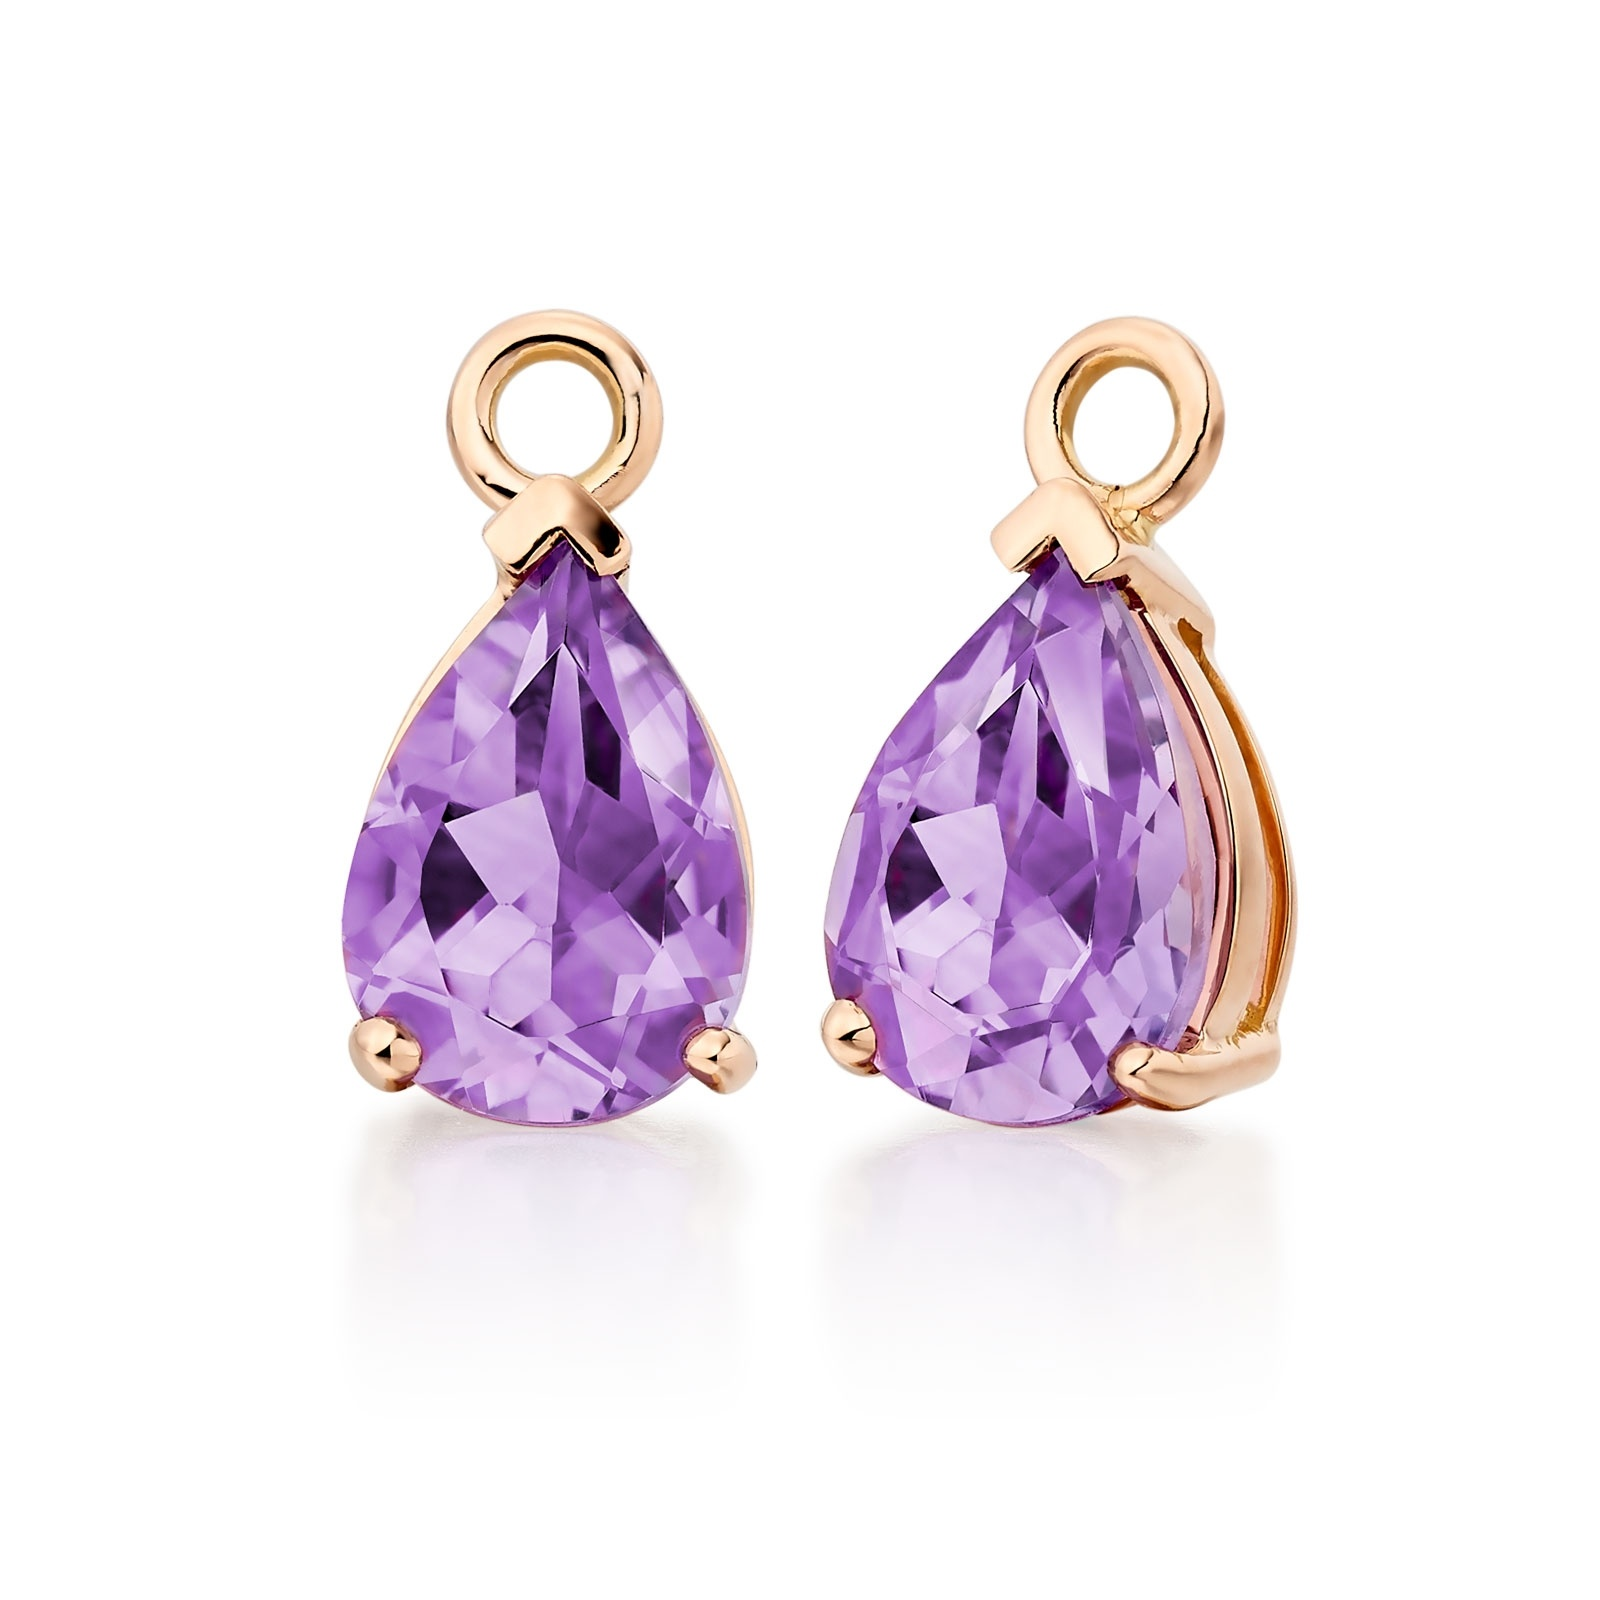 Mythologie Amethyst Leverback Drops in Rose Gold -GELPRG1041-1